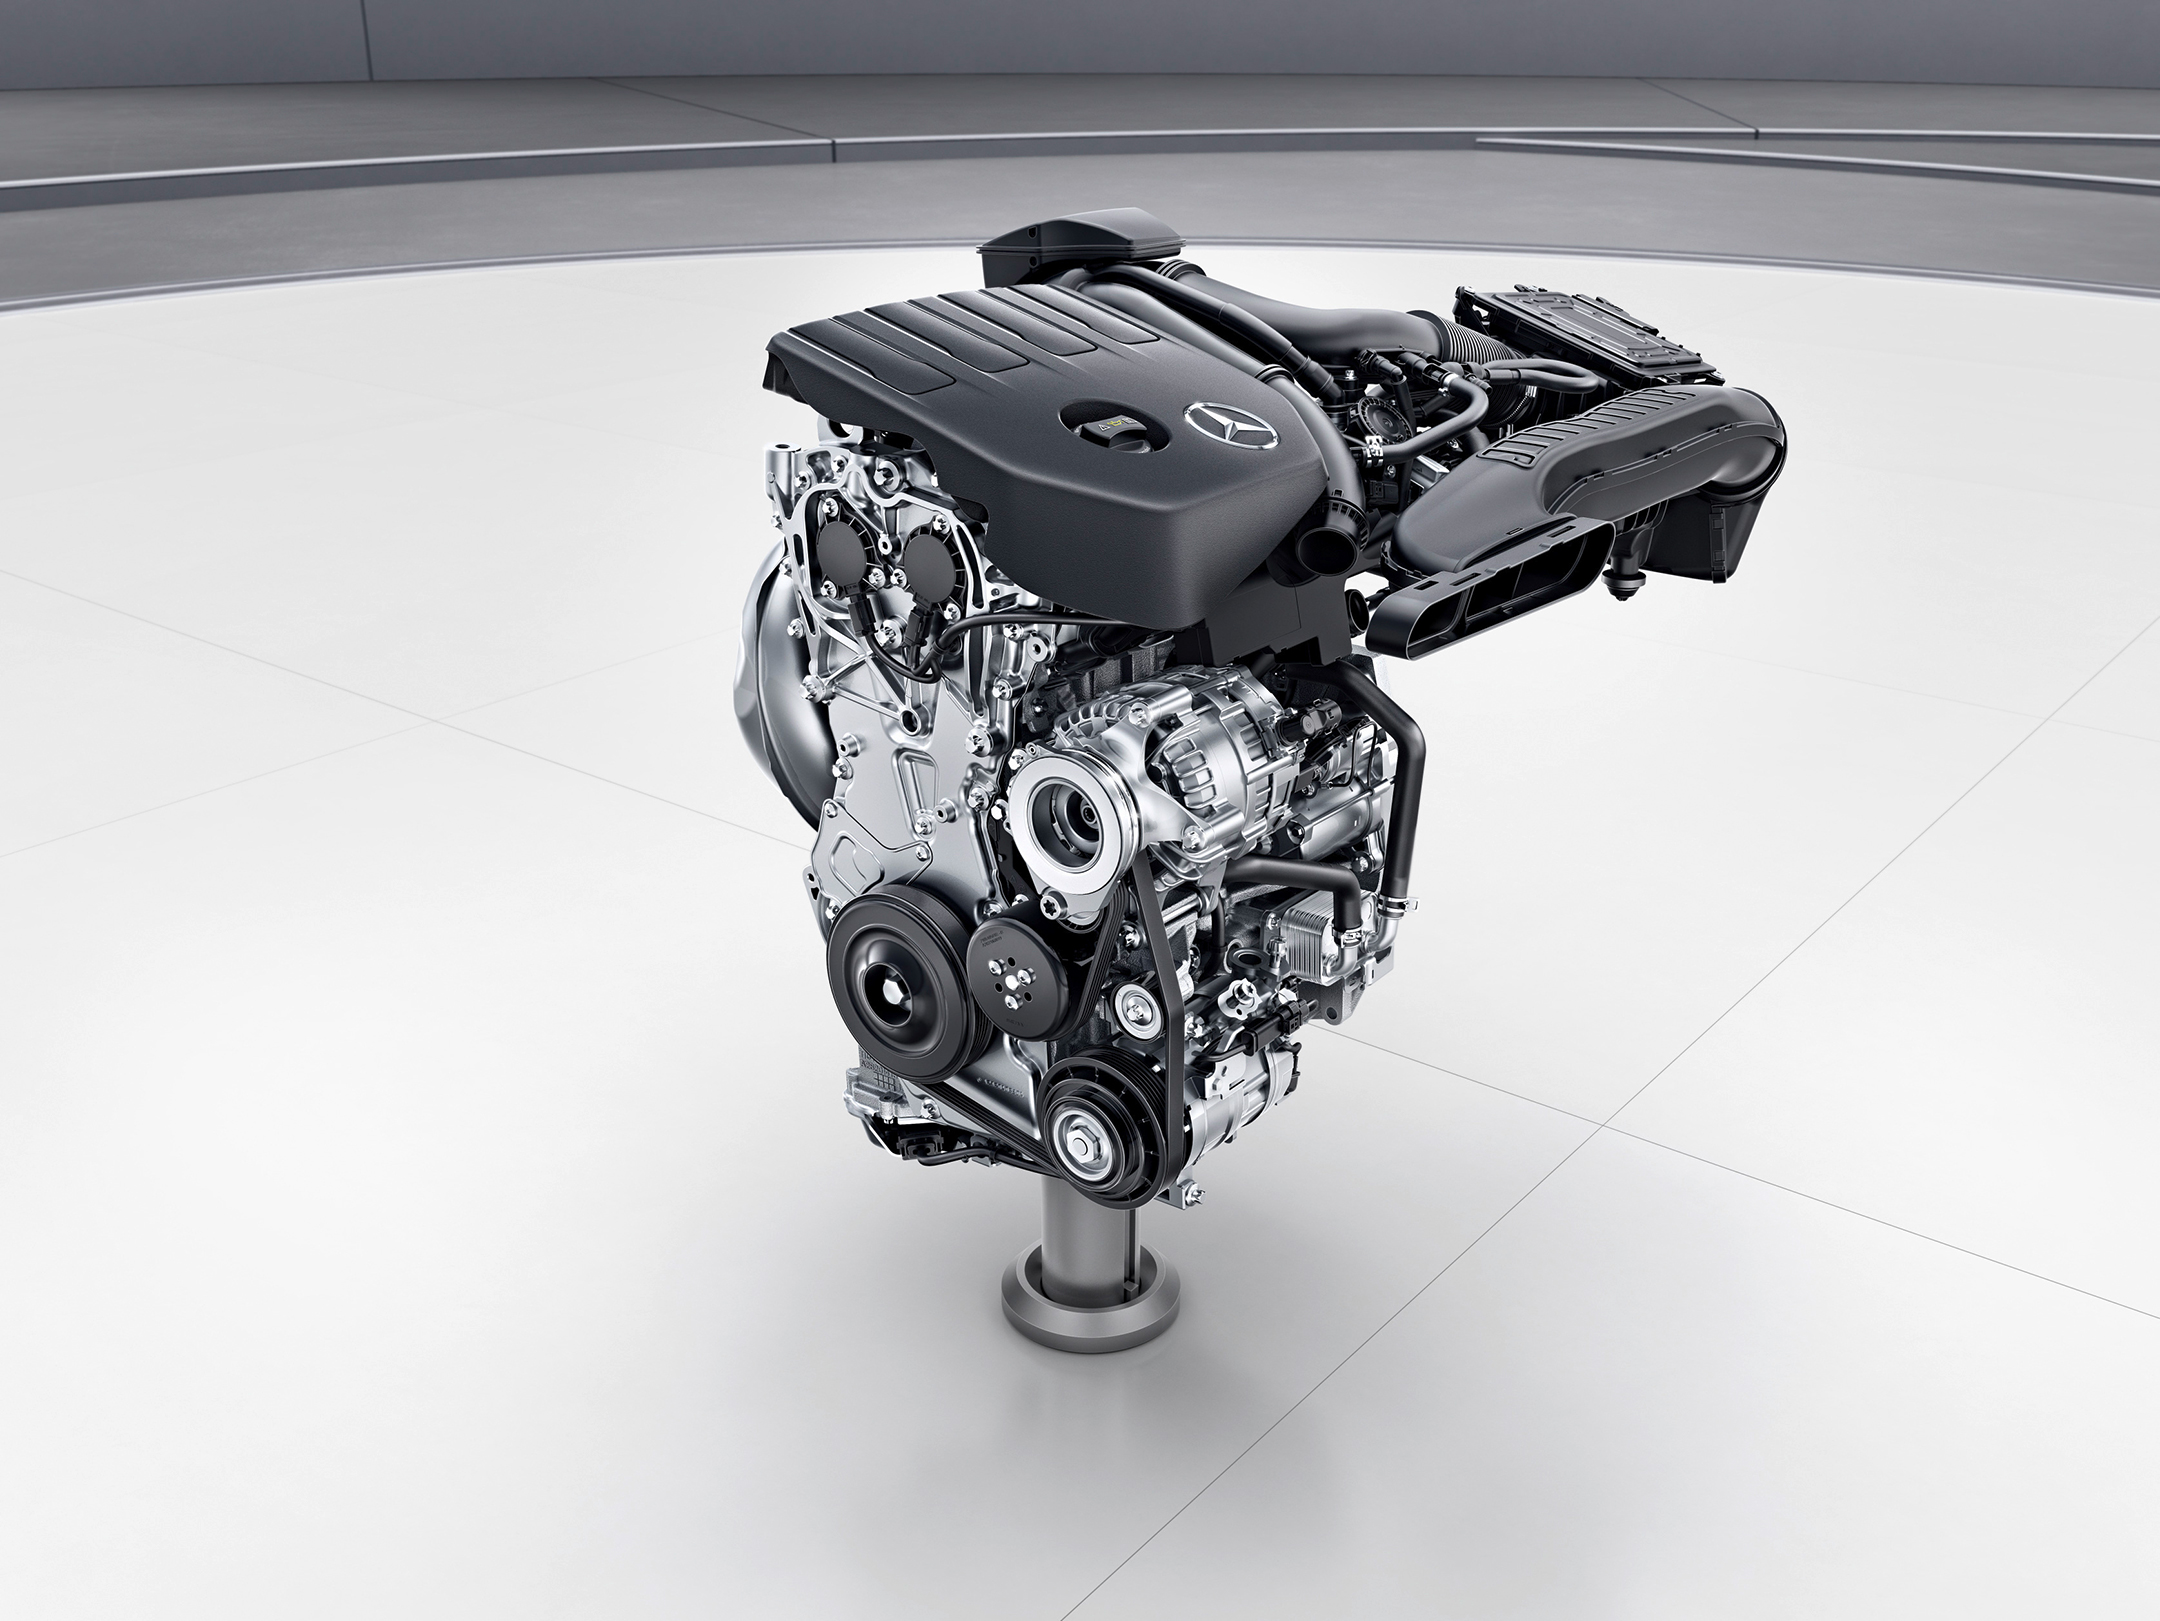 Mercedes-Benz A-Class - 2018 - engine M282 - 4-cylinder-gasoline